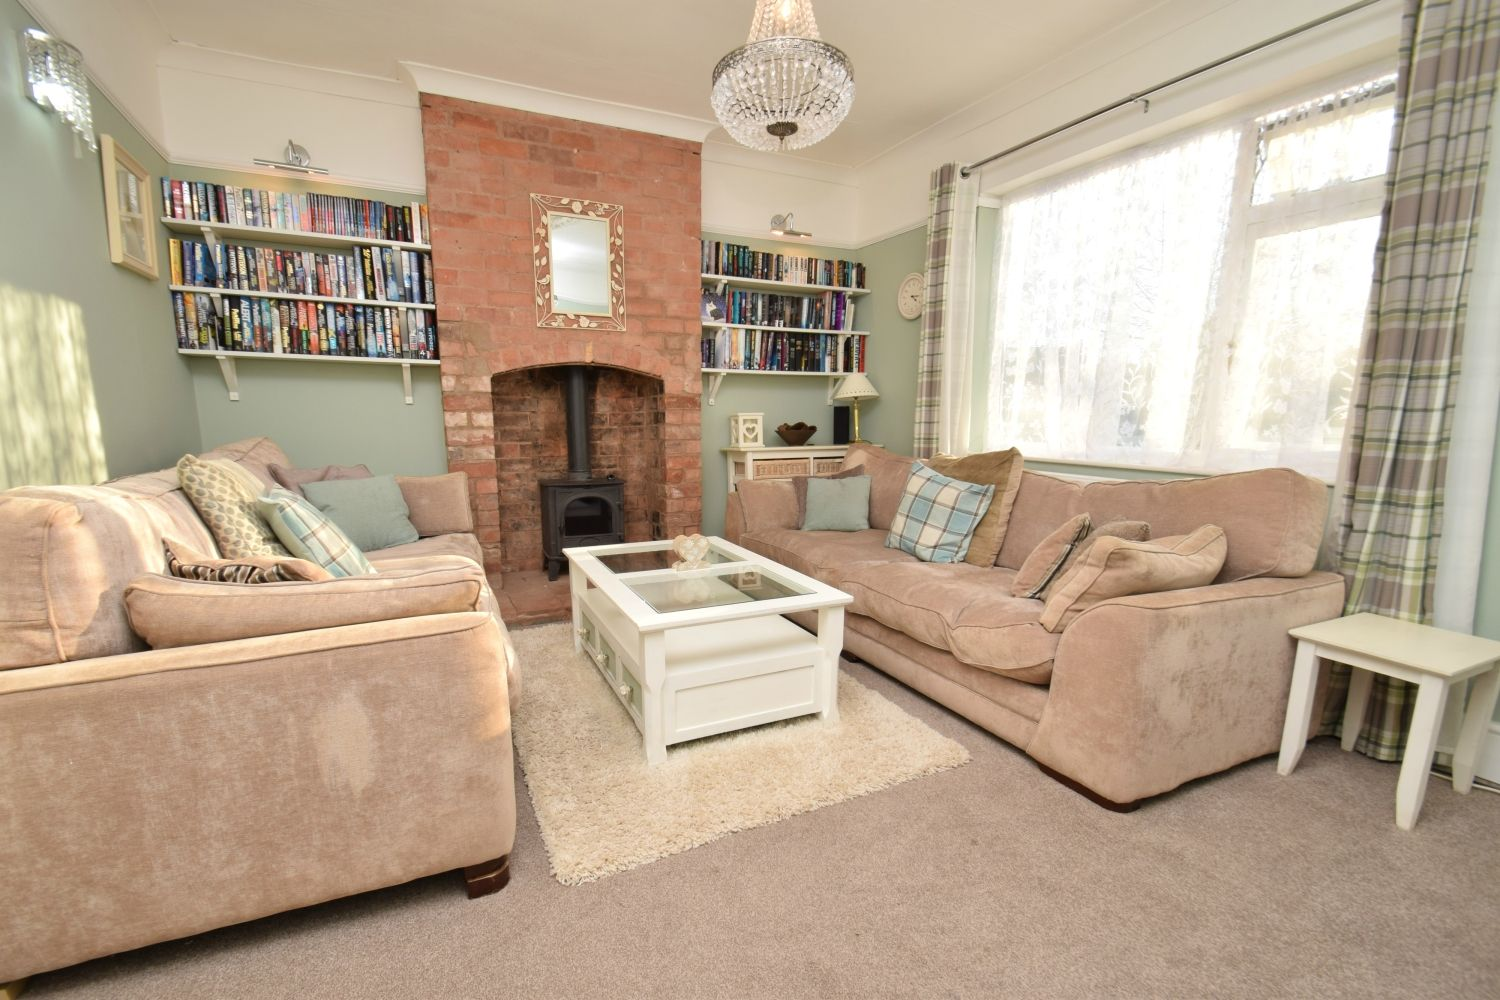 4 bed semi-detached for sale in Upland Grove, Bromsgrove, B61  - Property Image 5